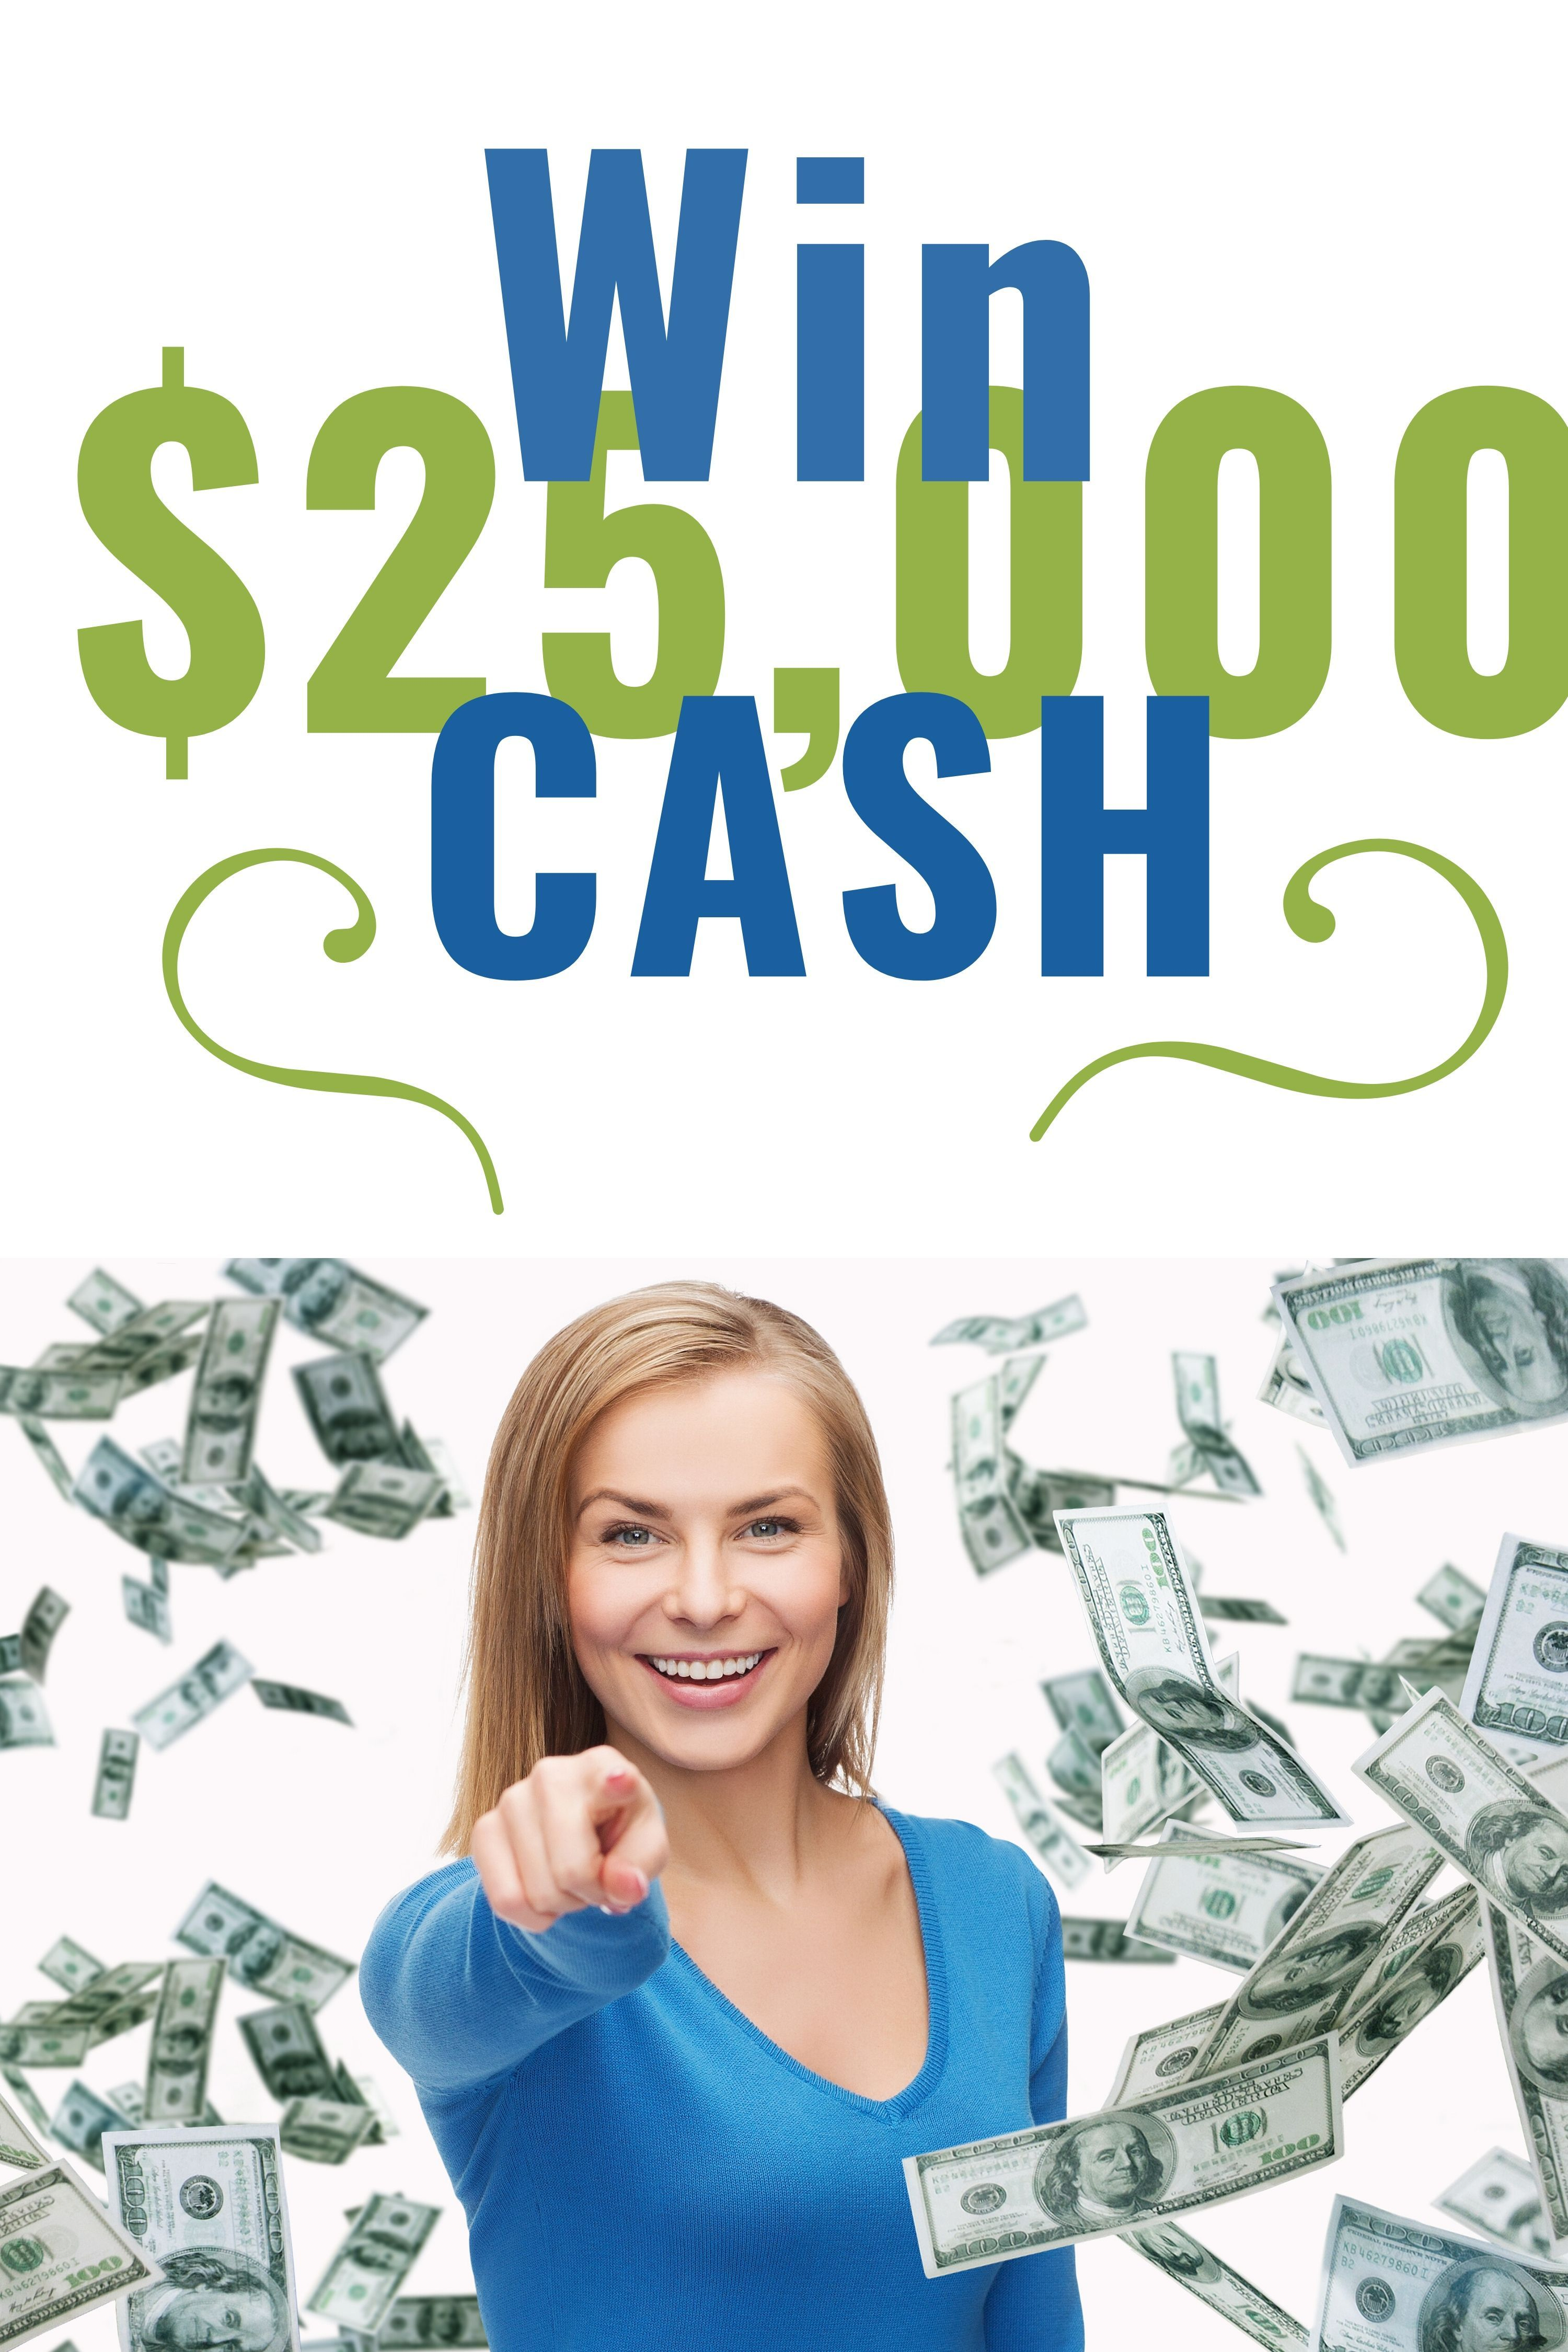 Enter to win 25000 cash 5 first place winners sweeps